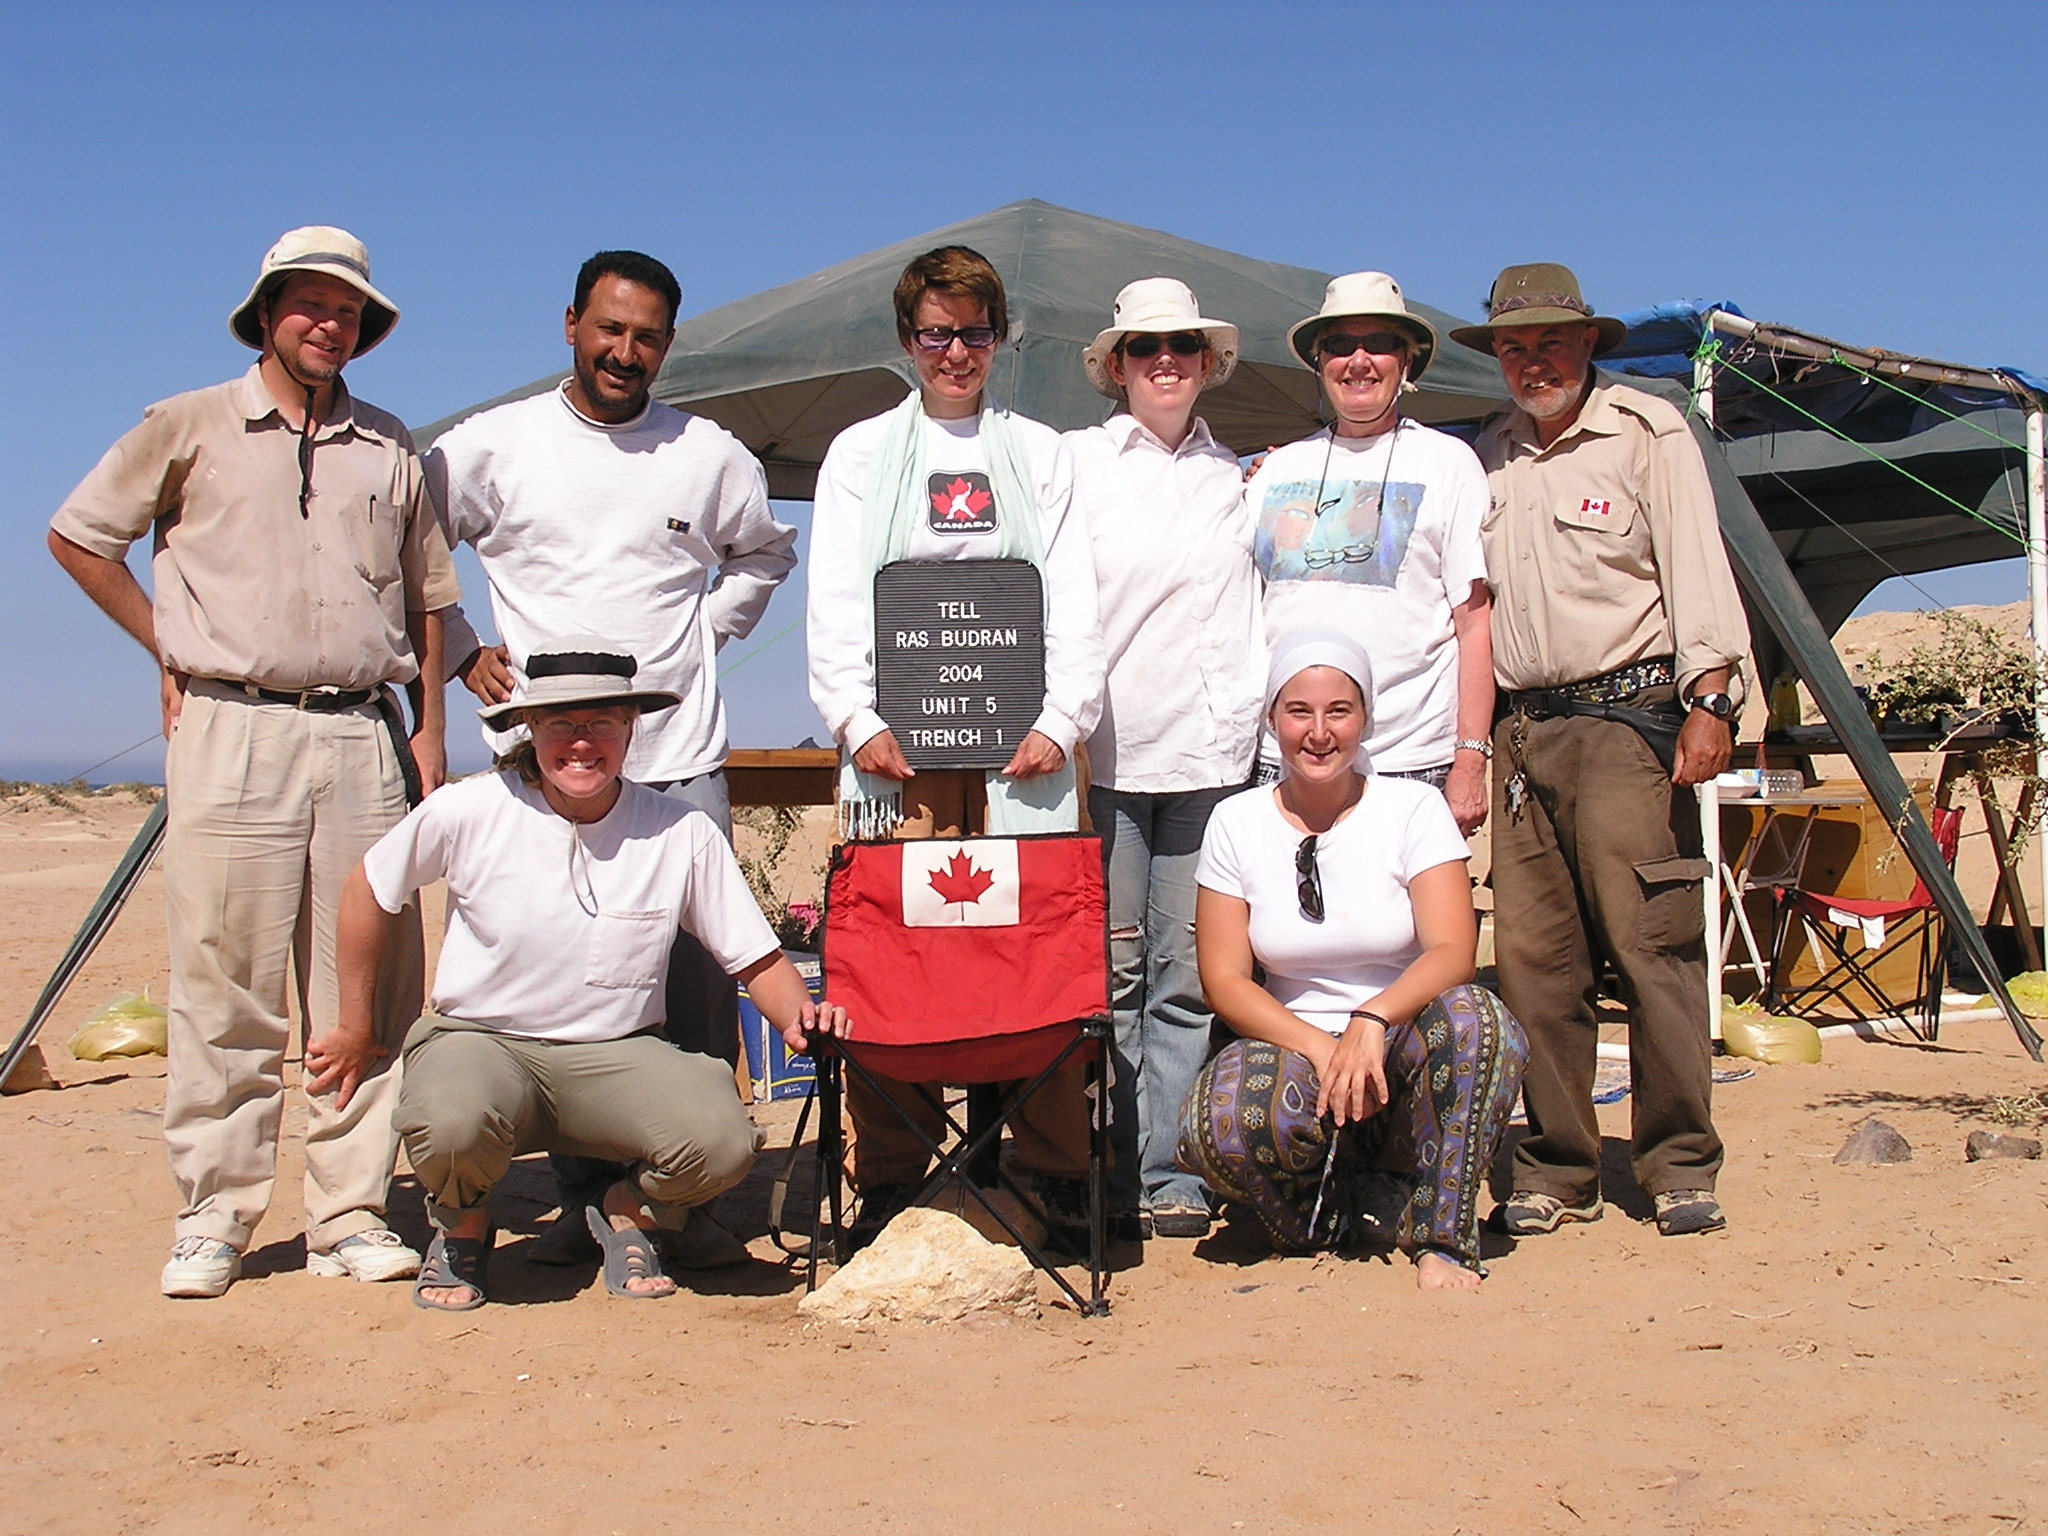 Ras Budran (South Sinai, Egypt) 2004 project members: G. Mumford, M. Rezk, D. Donnelly, Z. McQuinn, R. Hummel, and P. Carstens (left-right, back row), and S. Parcak and S. Christodoulou (left-right, front row) (Photo: Staff).